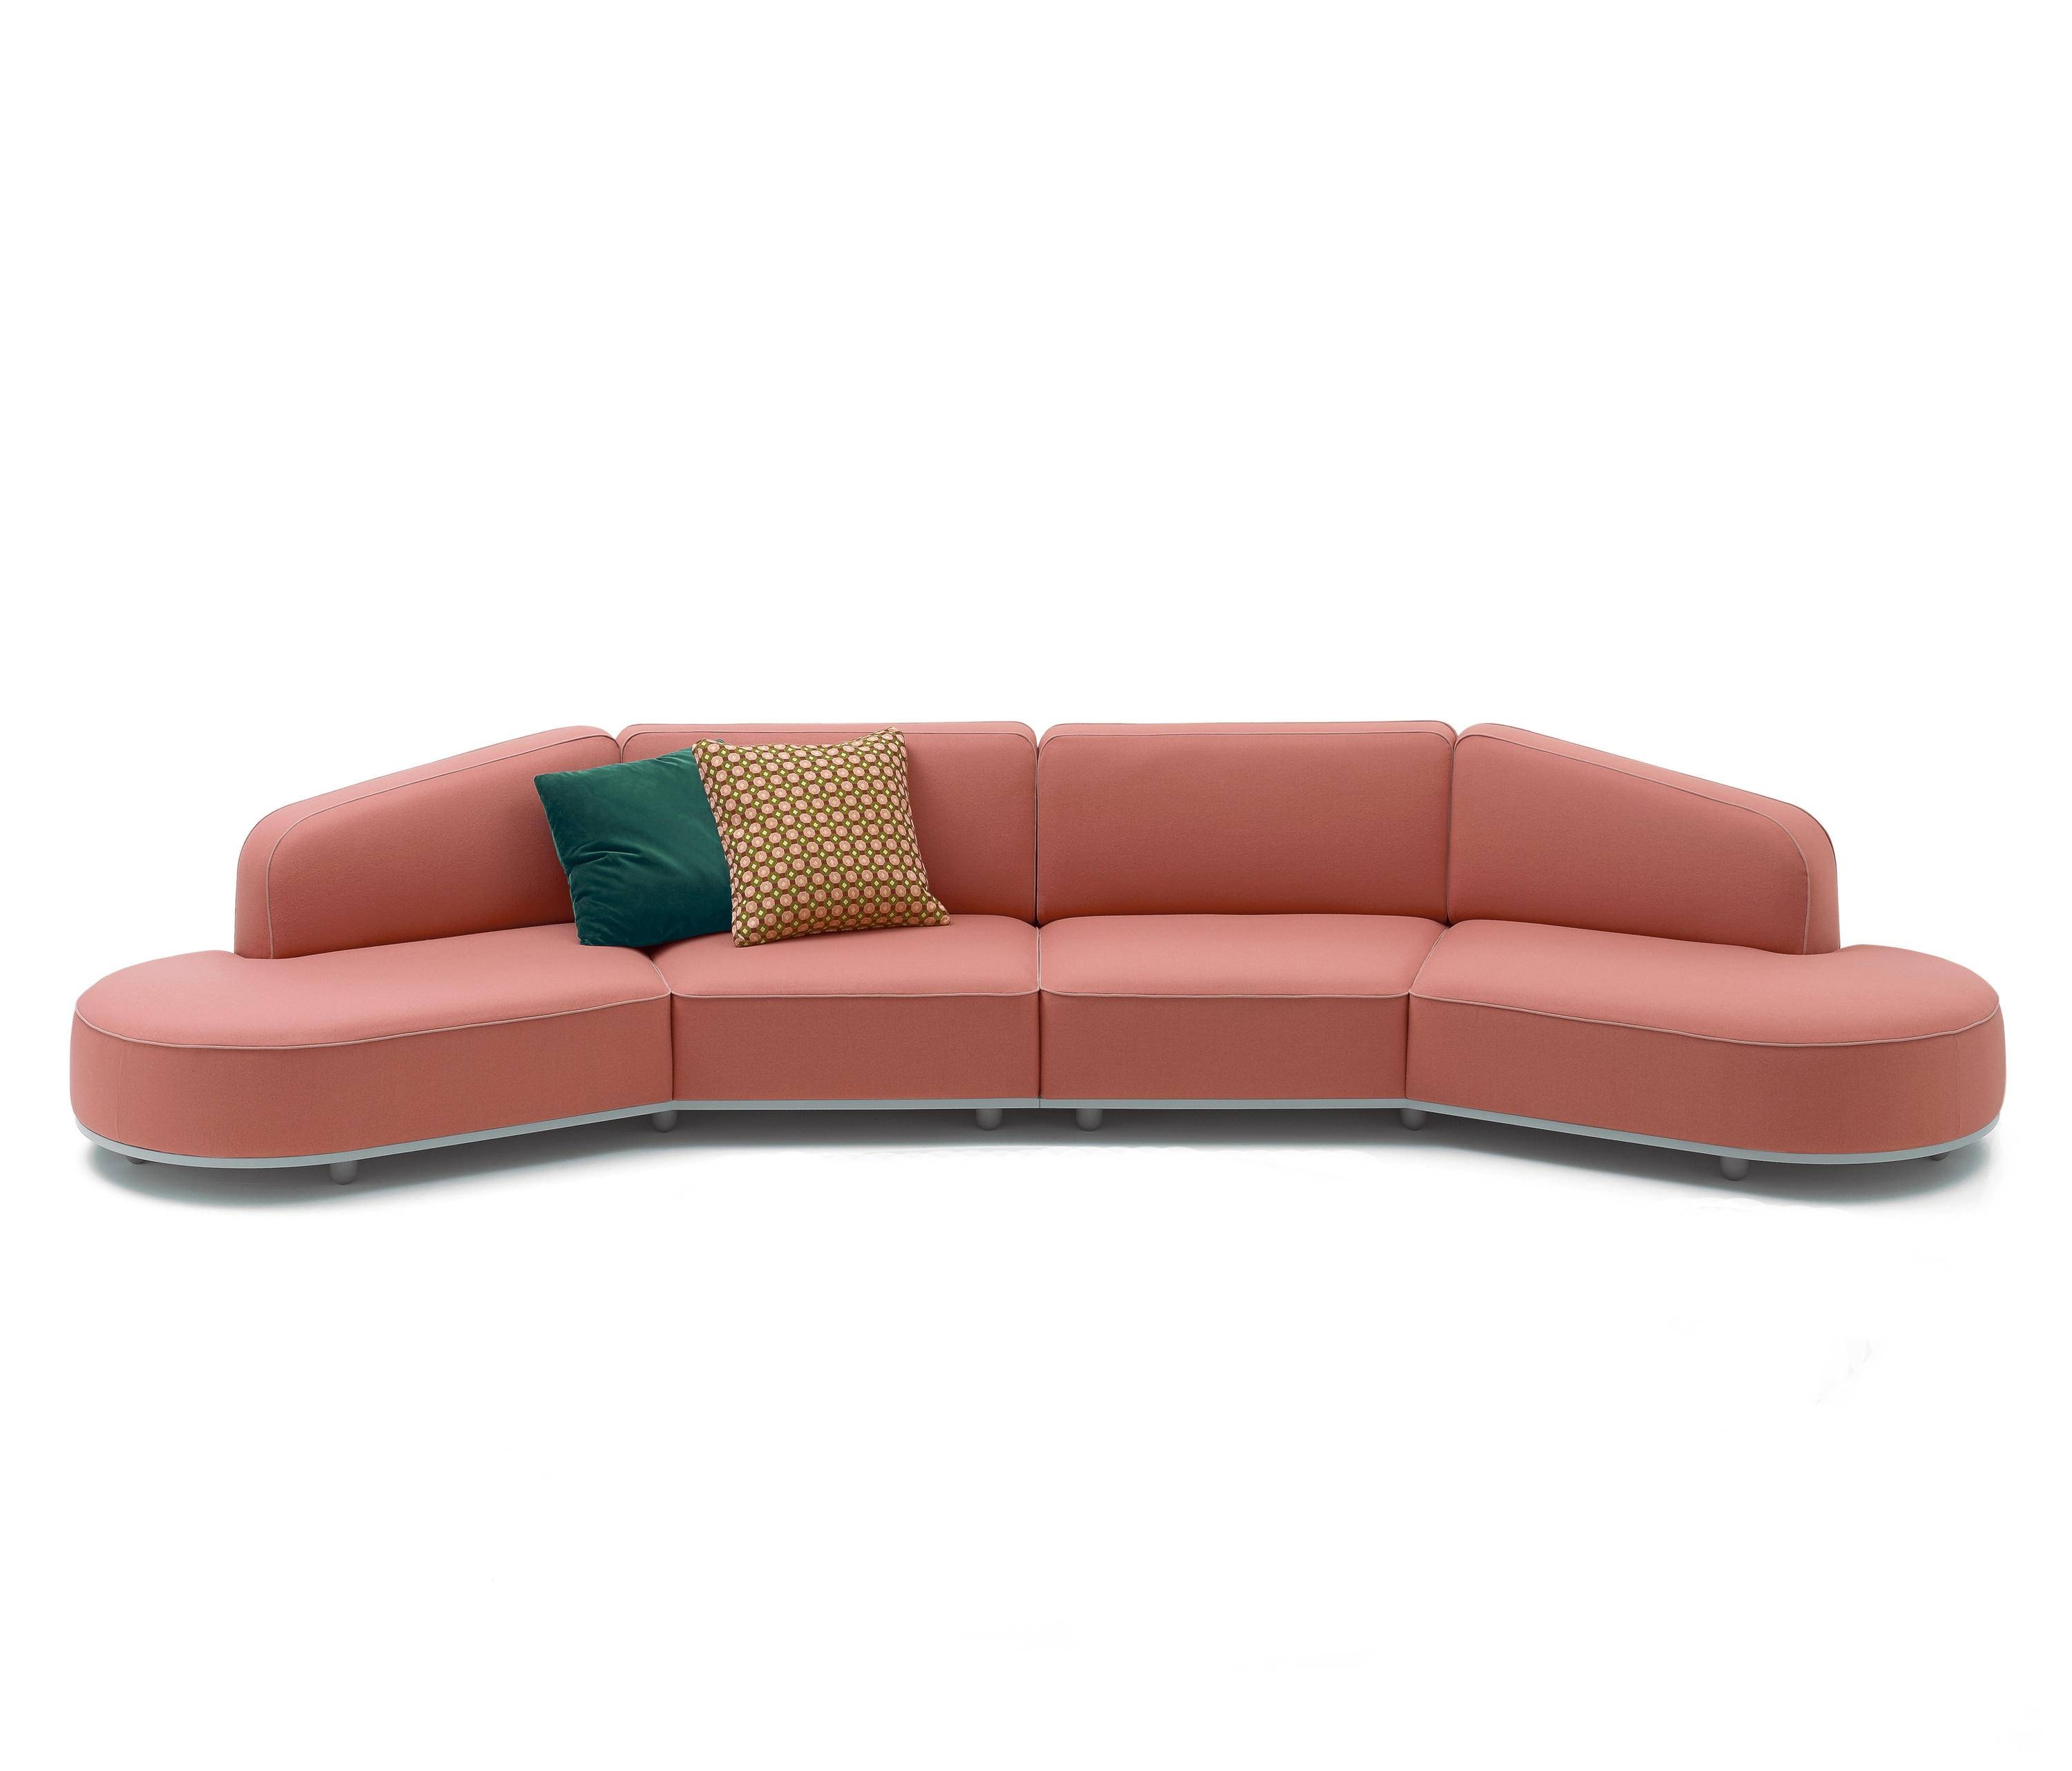 Lounge Sofas - High Quality Designer Lounge Sofas | Architonic inside Lounge Sofas and Chairs (Image 8 of 12)